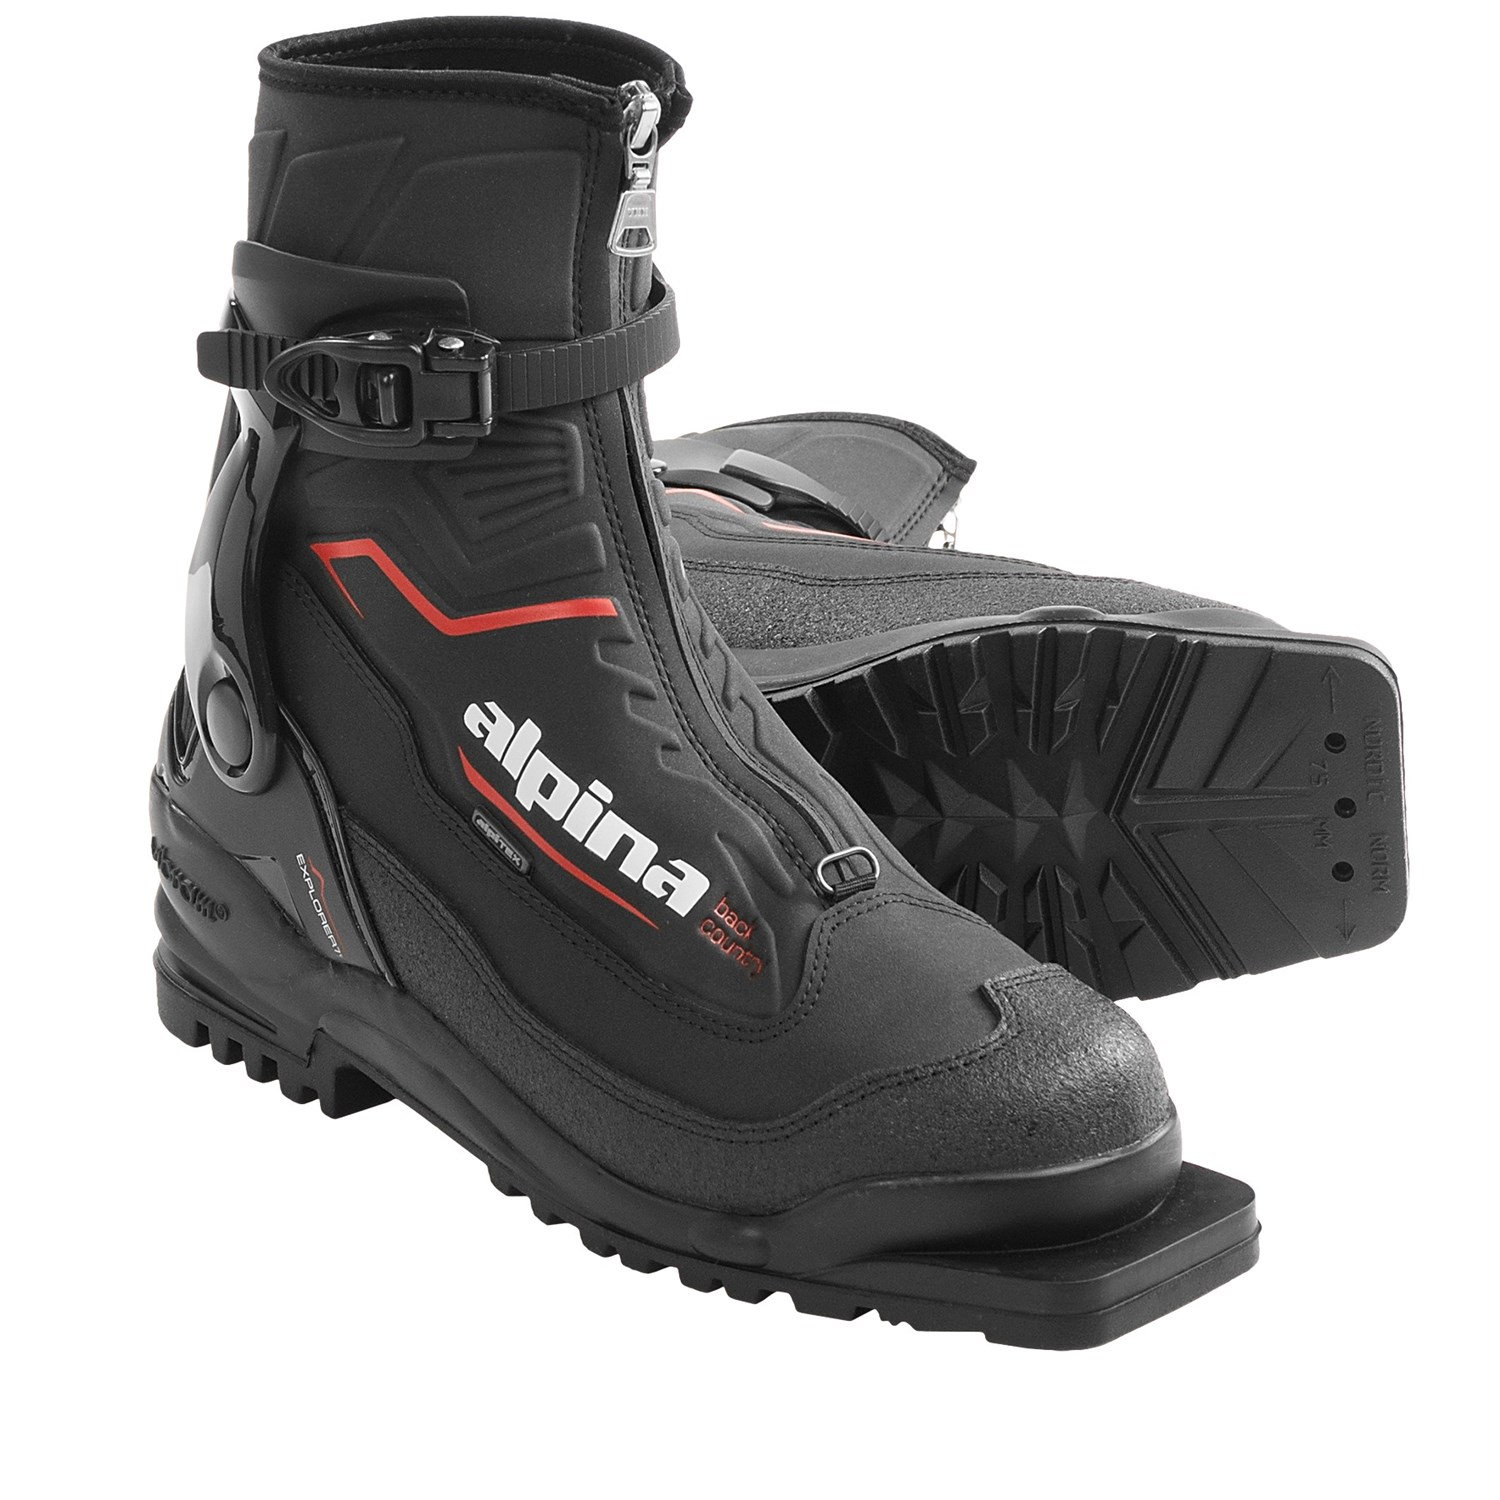 Alpina Explorer Nordic Touring Boots CLOSEOUT Moab Gear Trader - Alpina backcountry skis